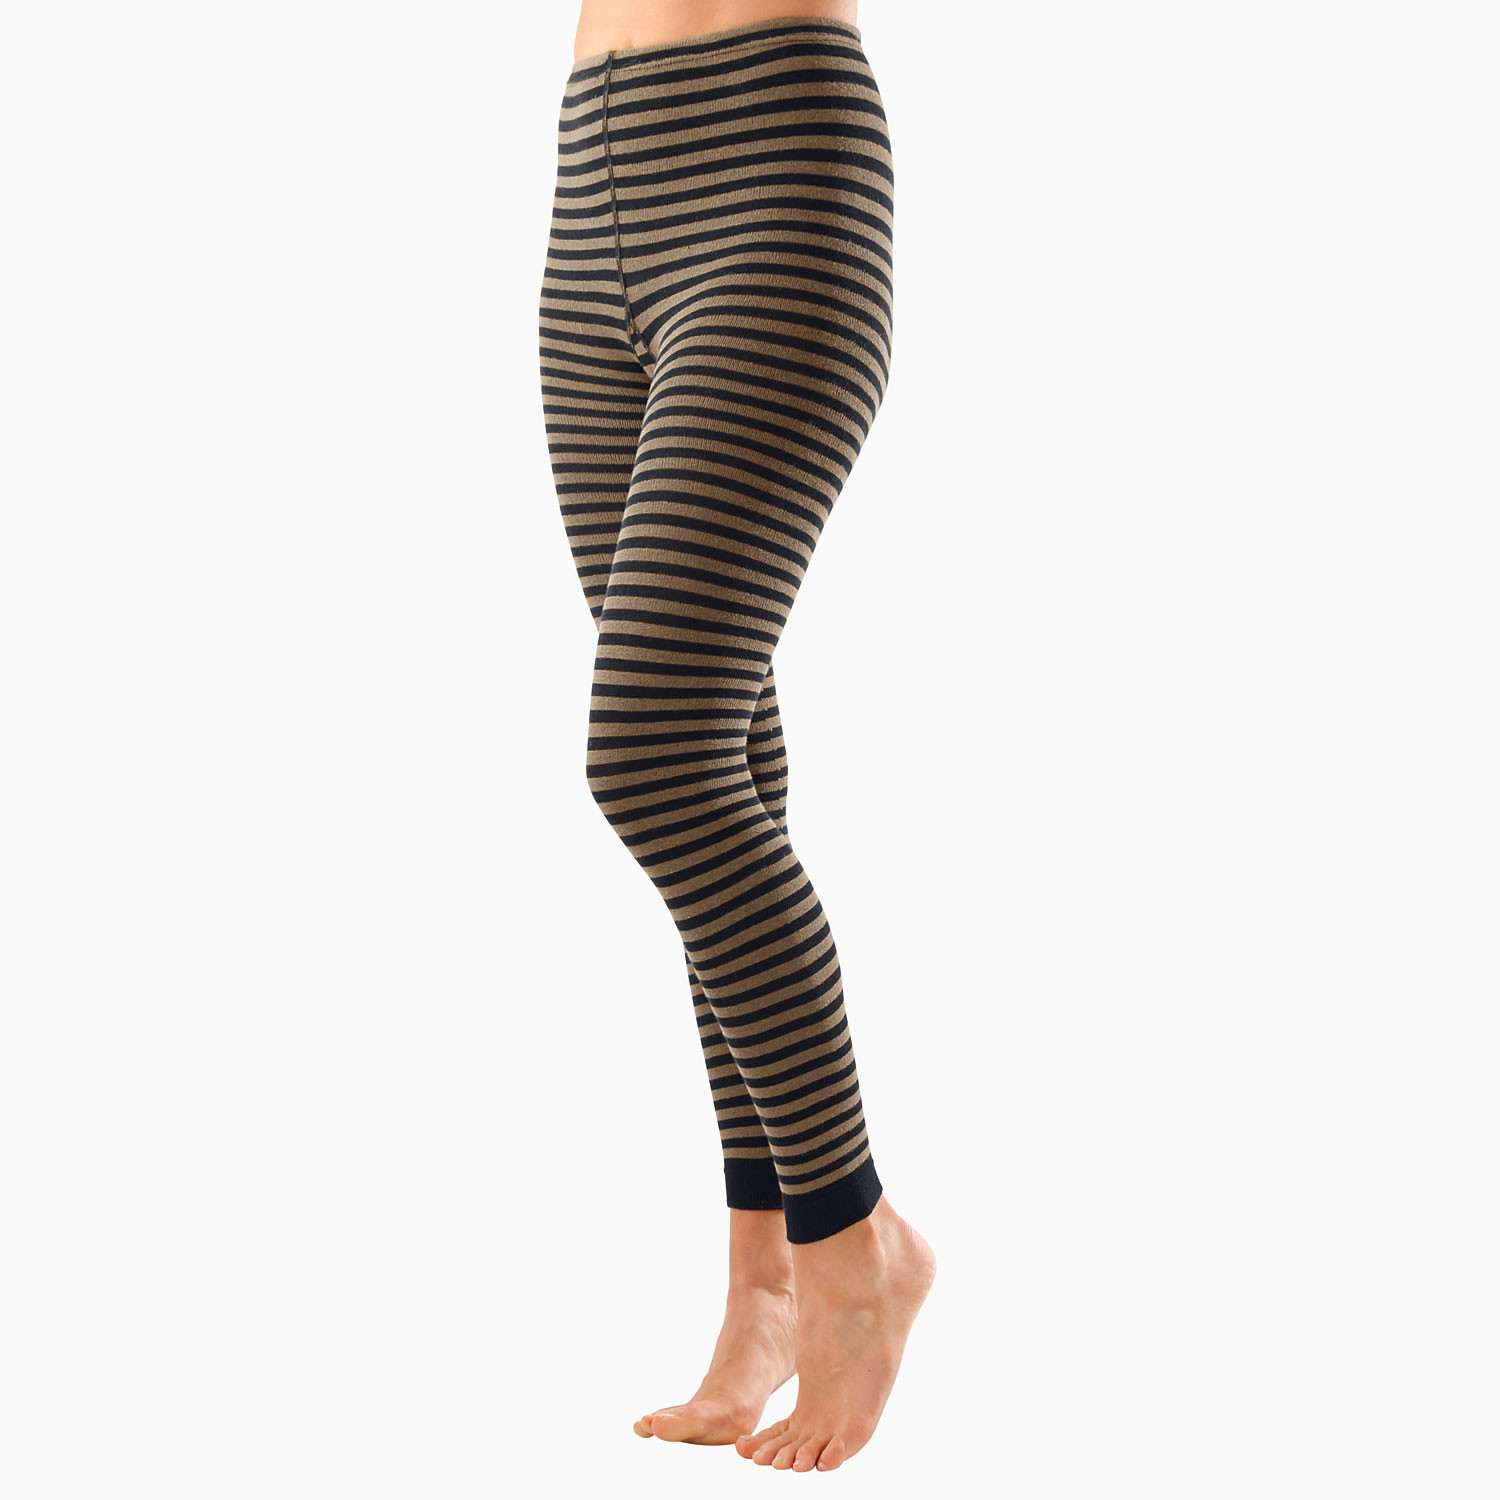 Ringel-Leggings, viola/schiefer